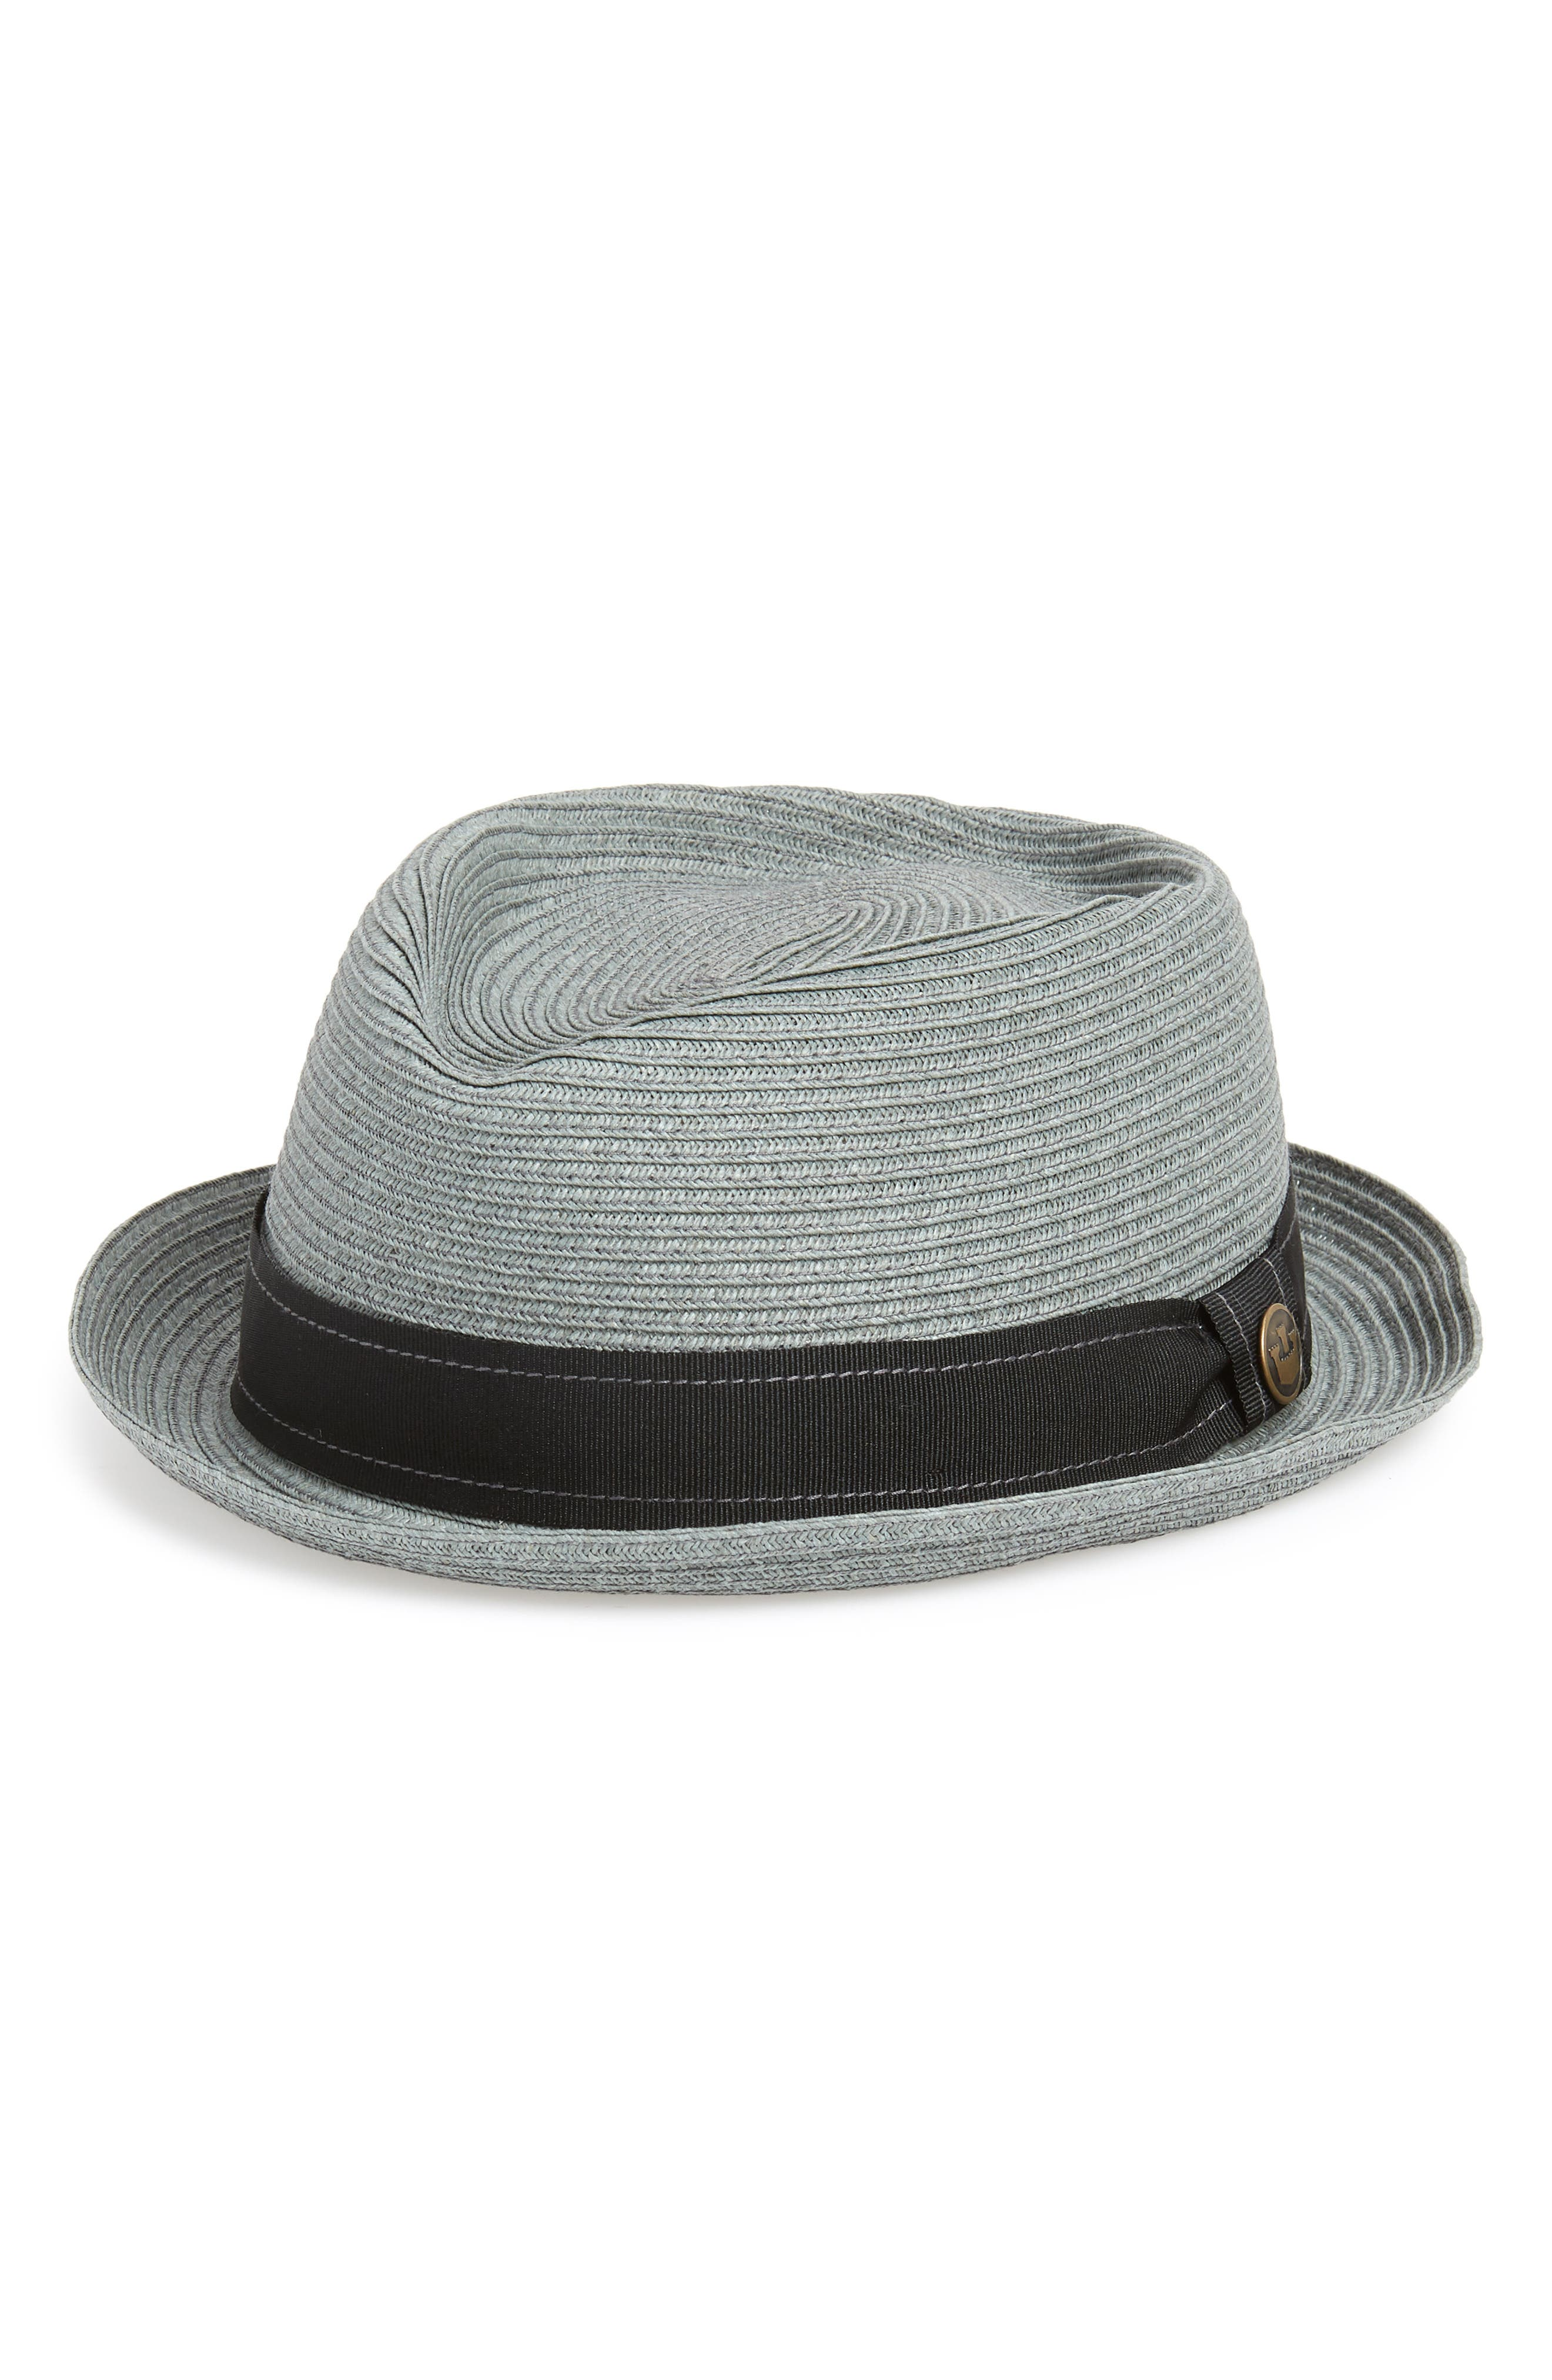 Goorin Brothers Big Joe Porkpie Hat